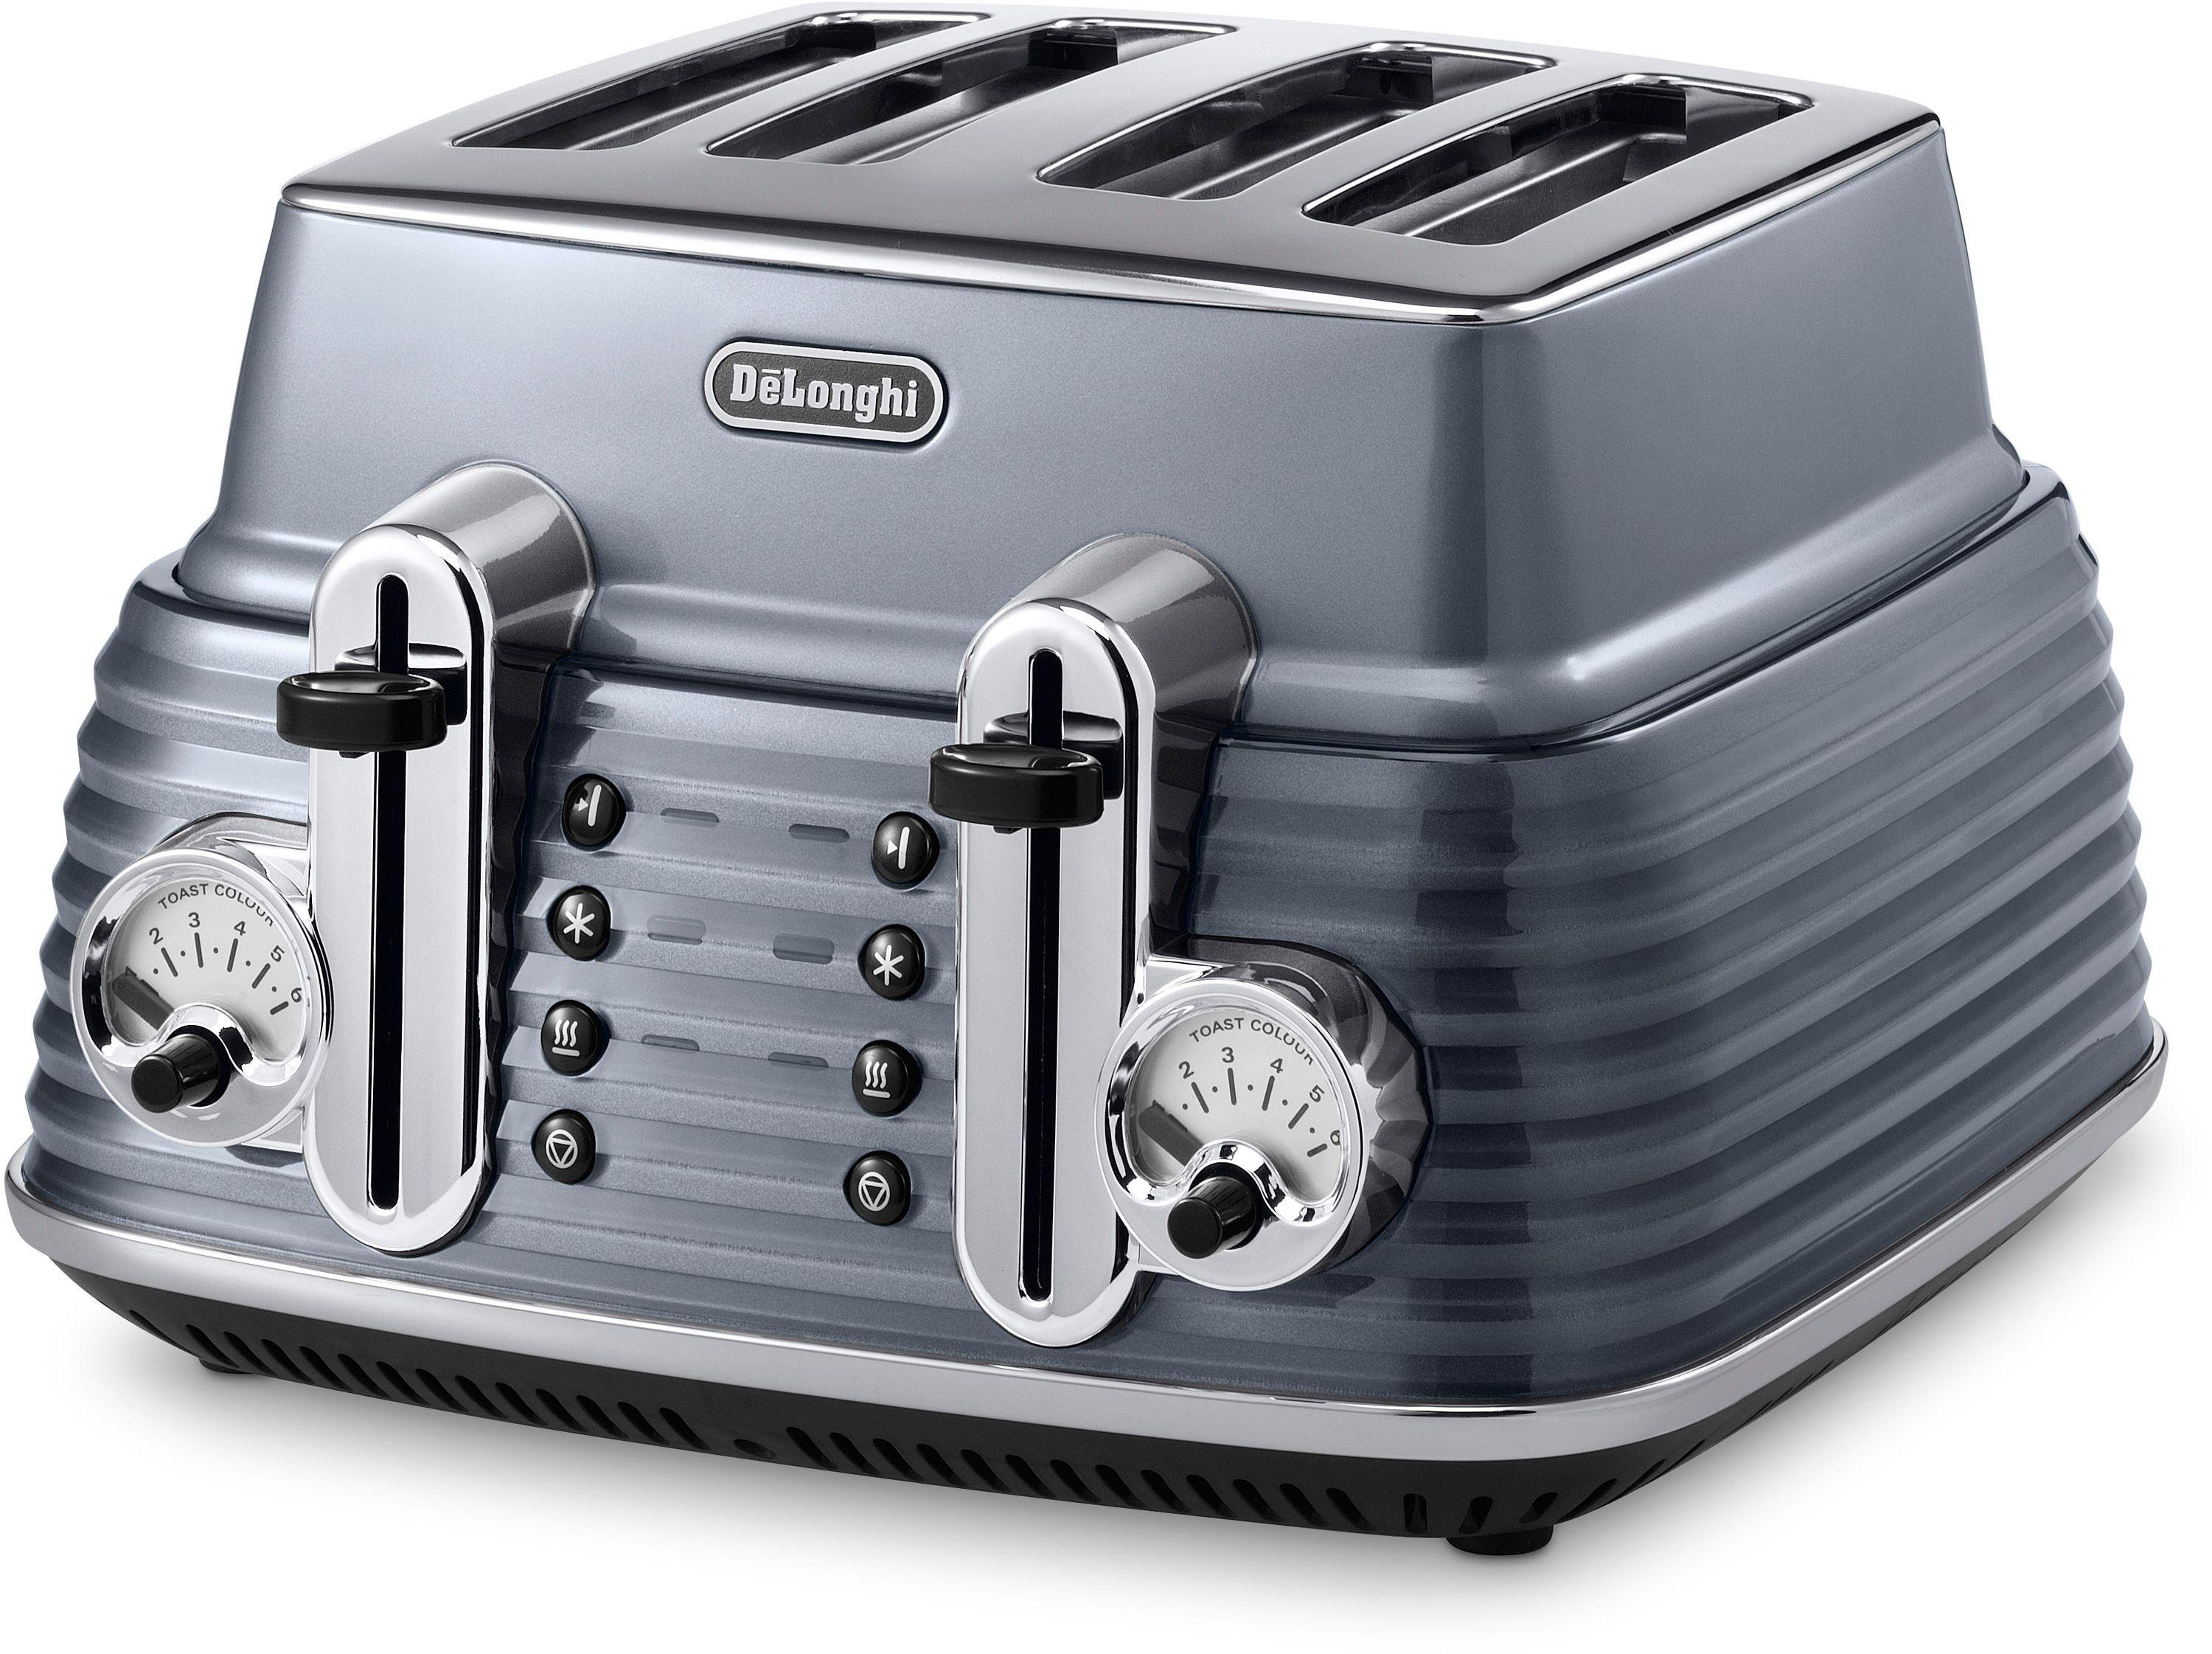 delonghi-toaster-scultura-4-slice-grey